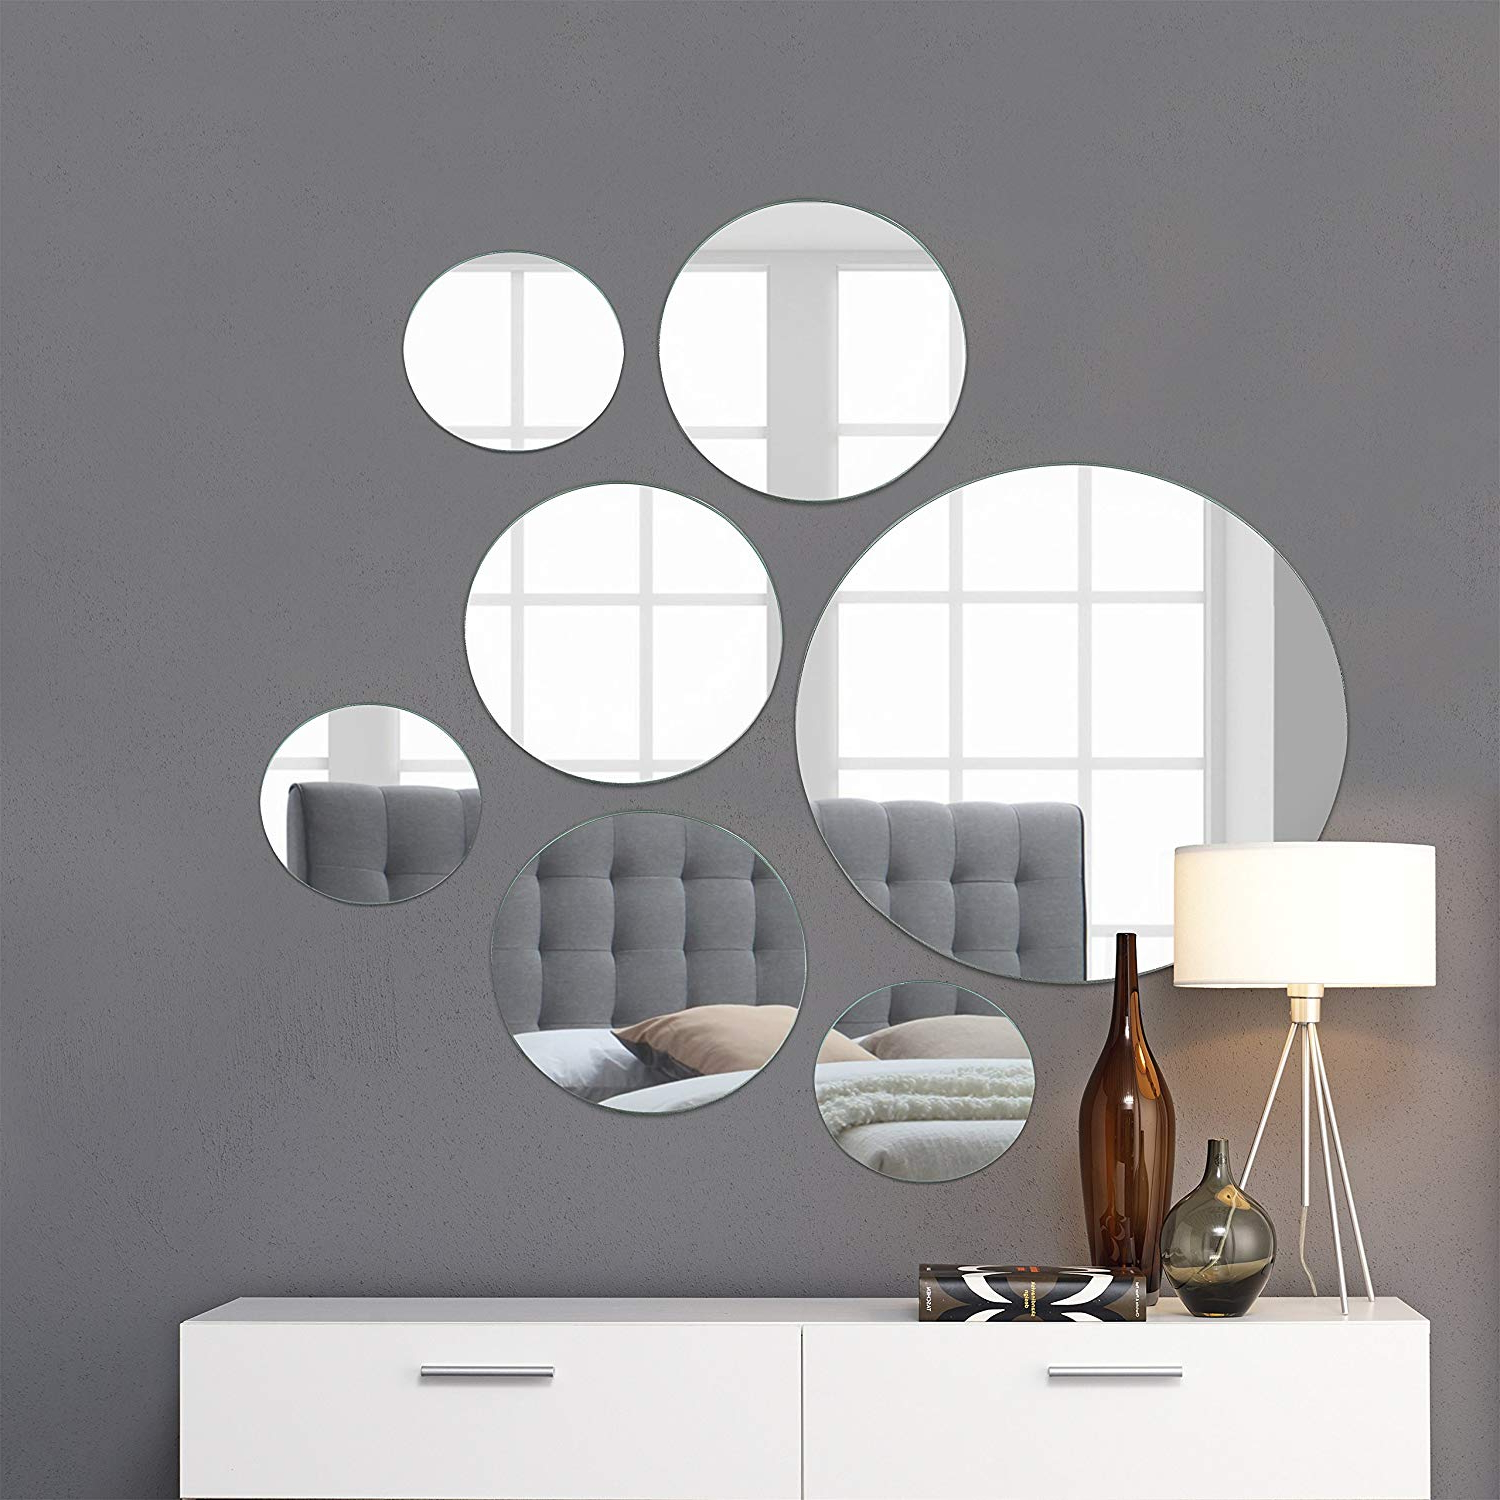 "Light Wall Mirrors Pertaining To Latest Light In The Dark Medium Round Mirror Wall Mounted Assorted Sizes (1X10"",  3X7"", 3X4"") – Set Of 7 Round Glass Mirrors Wall Decoration For Living Room, (Gallery 7 of 20)"